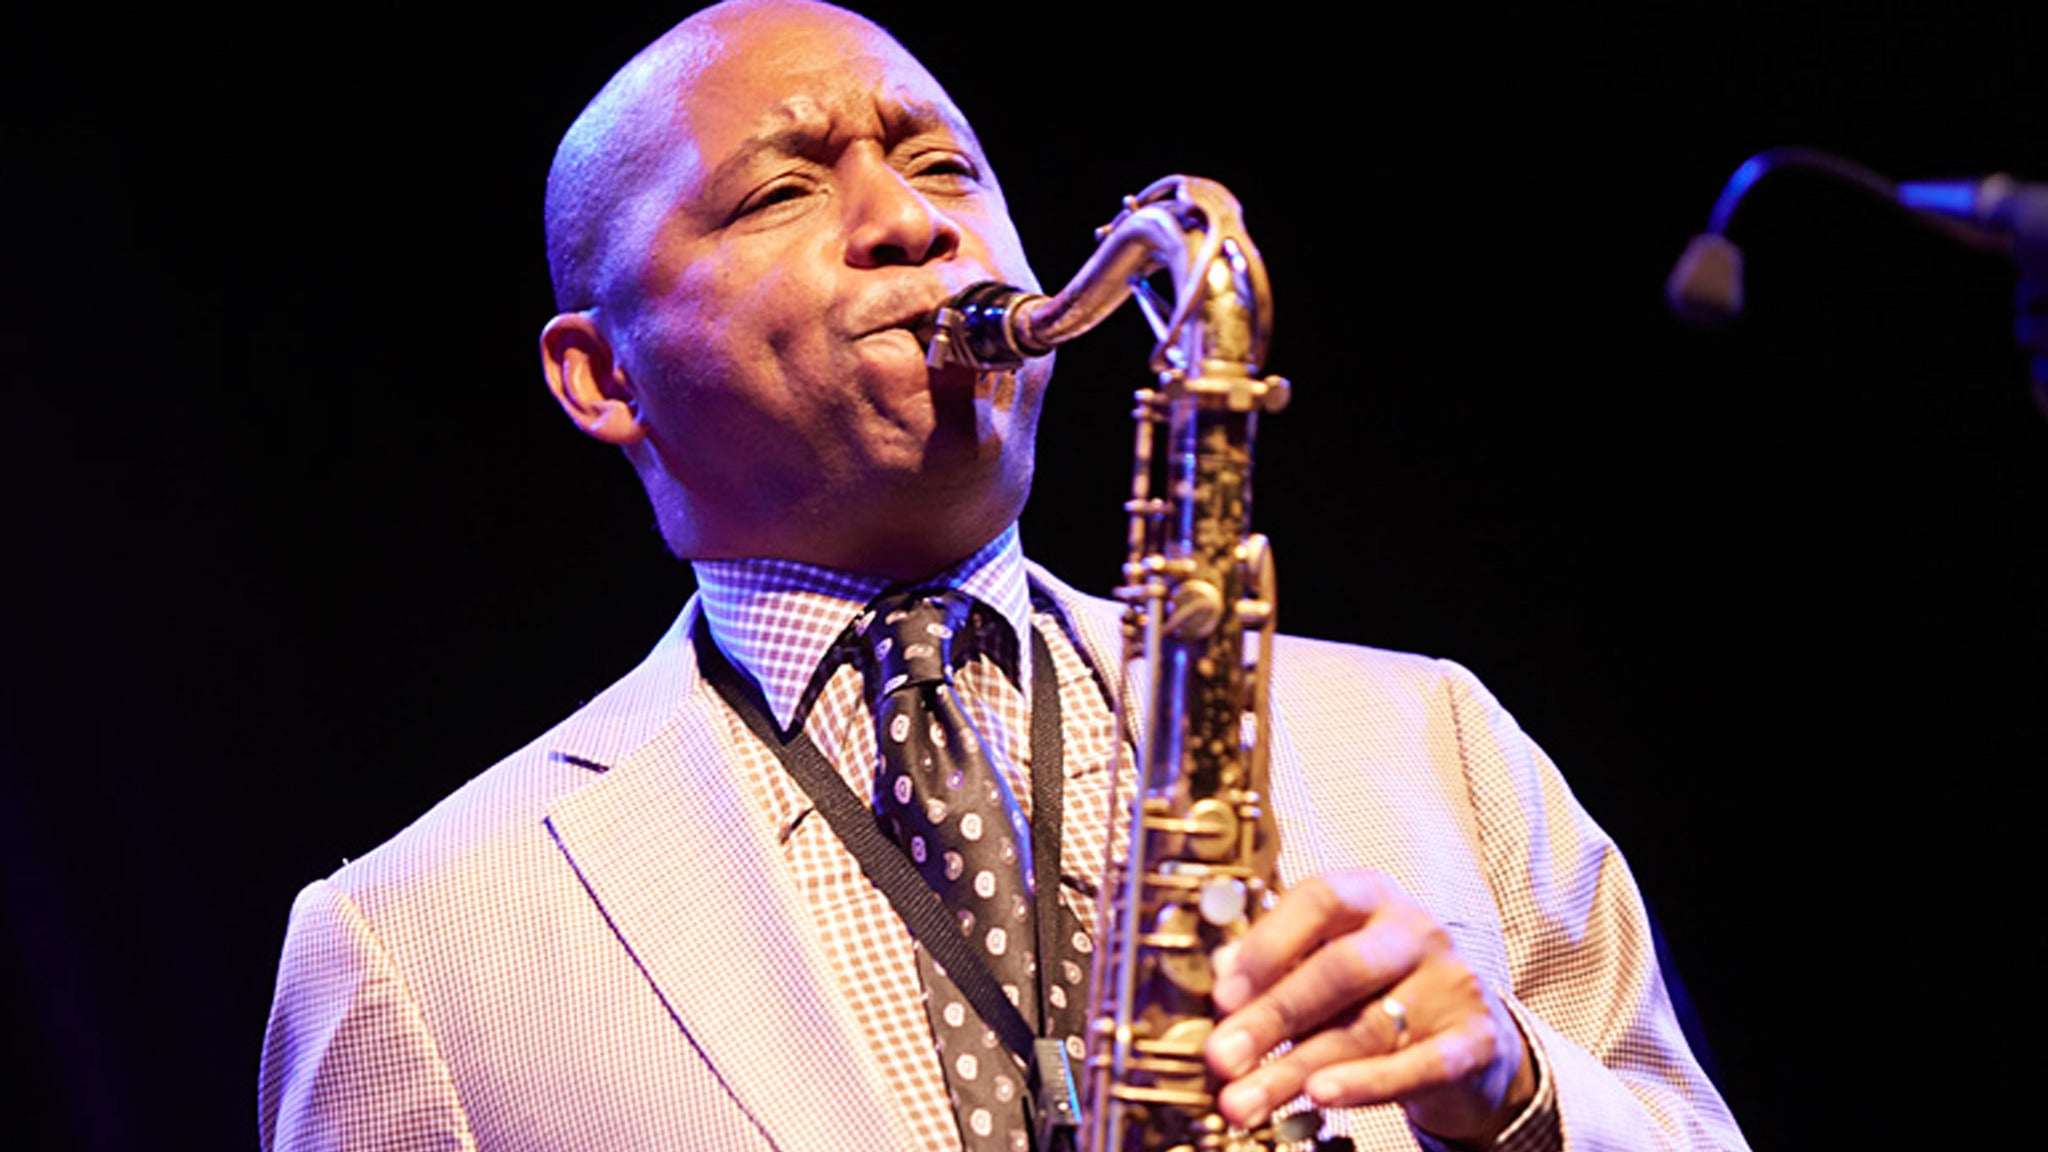 Branford Marsalis at Chapman Music Hall - TPAC